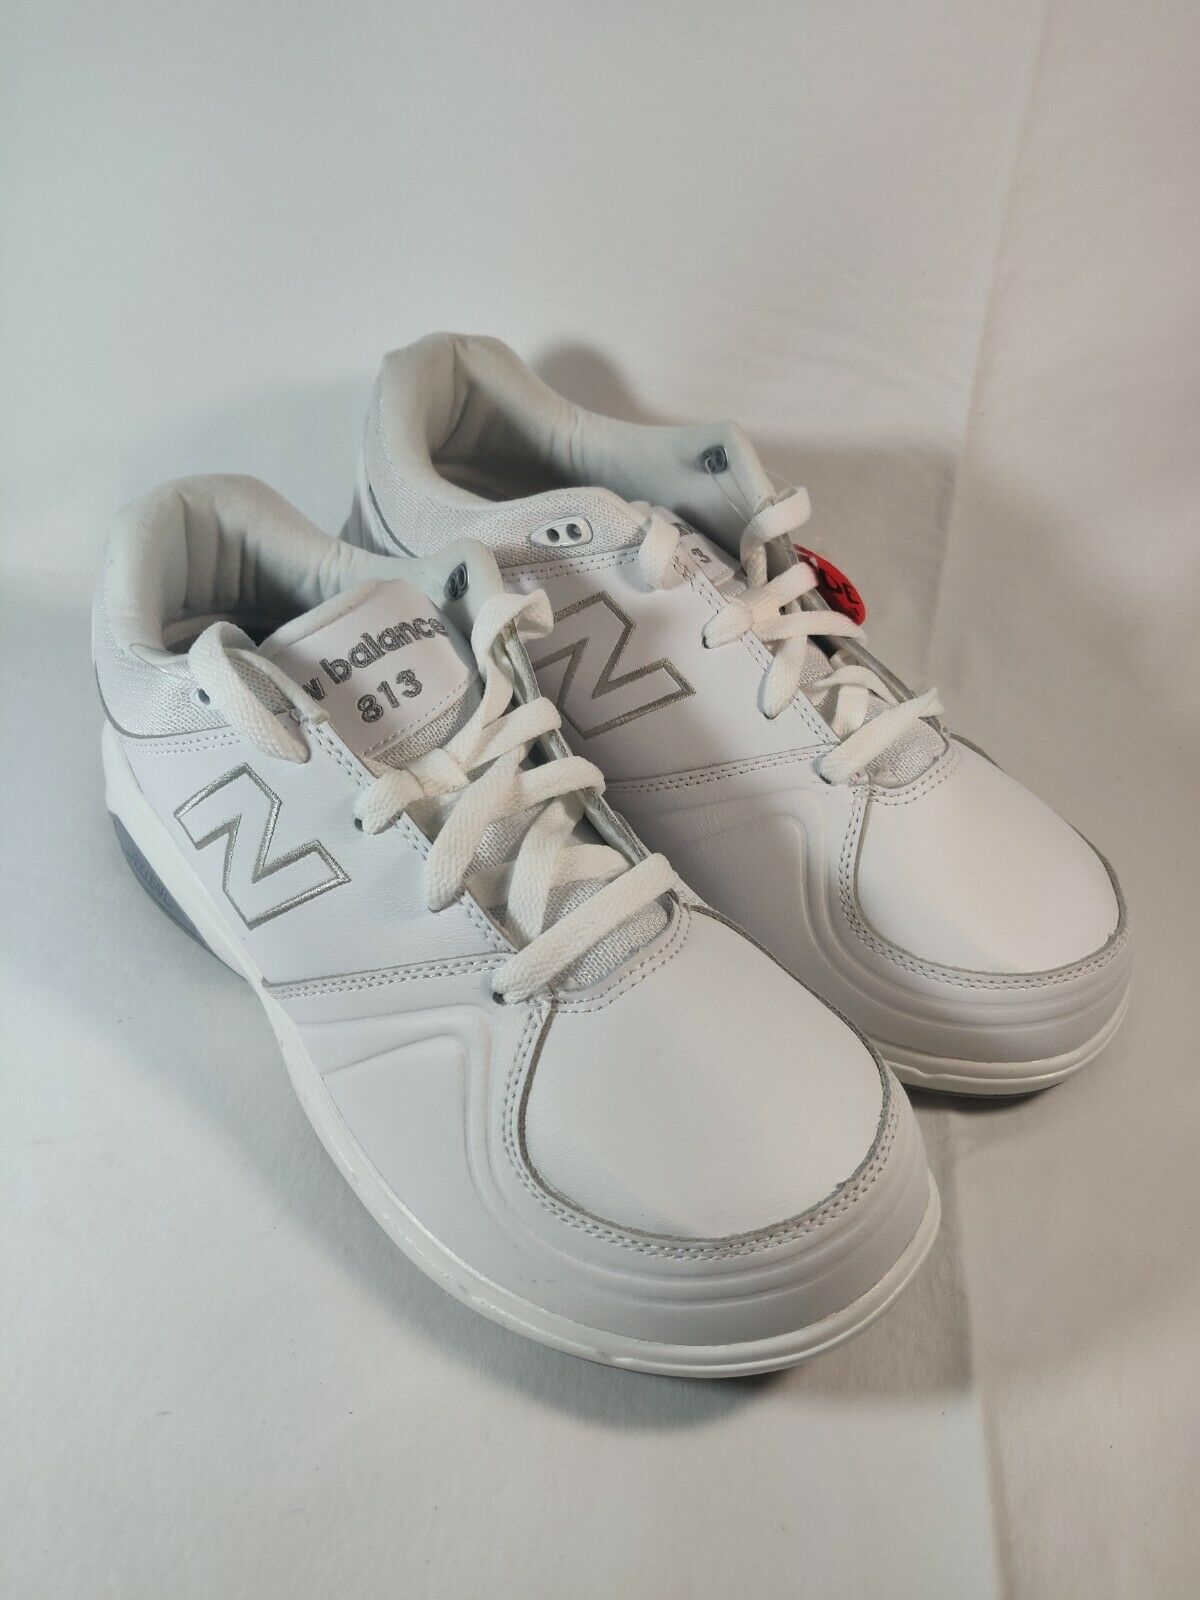 NICE New Balance 813 Size 11 4E WIDE Mens Athletic Walking Sneaker shoes WHITE